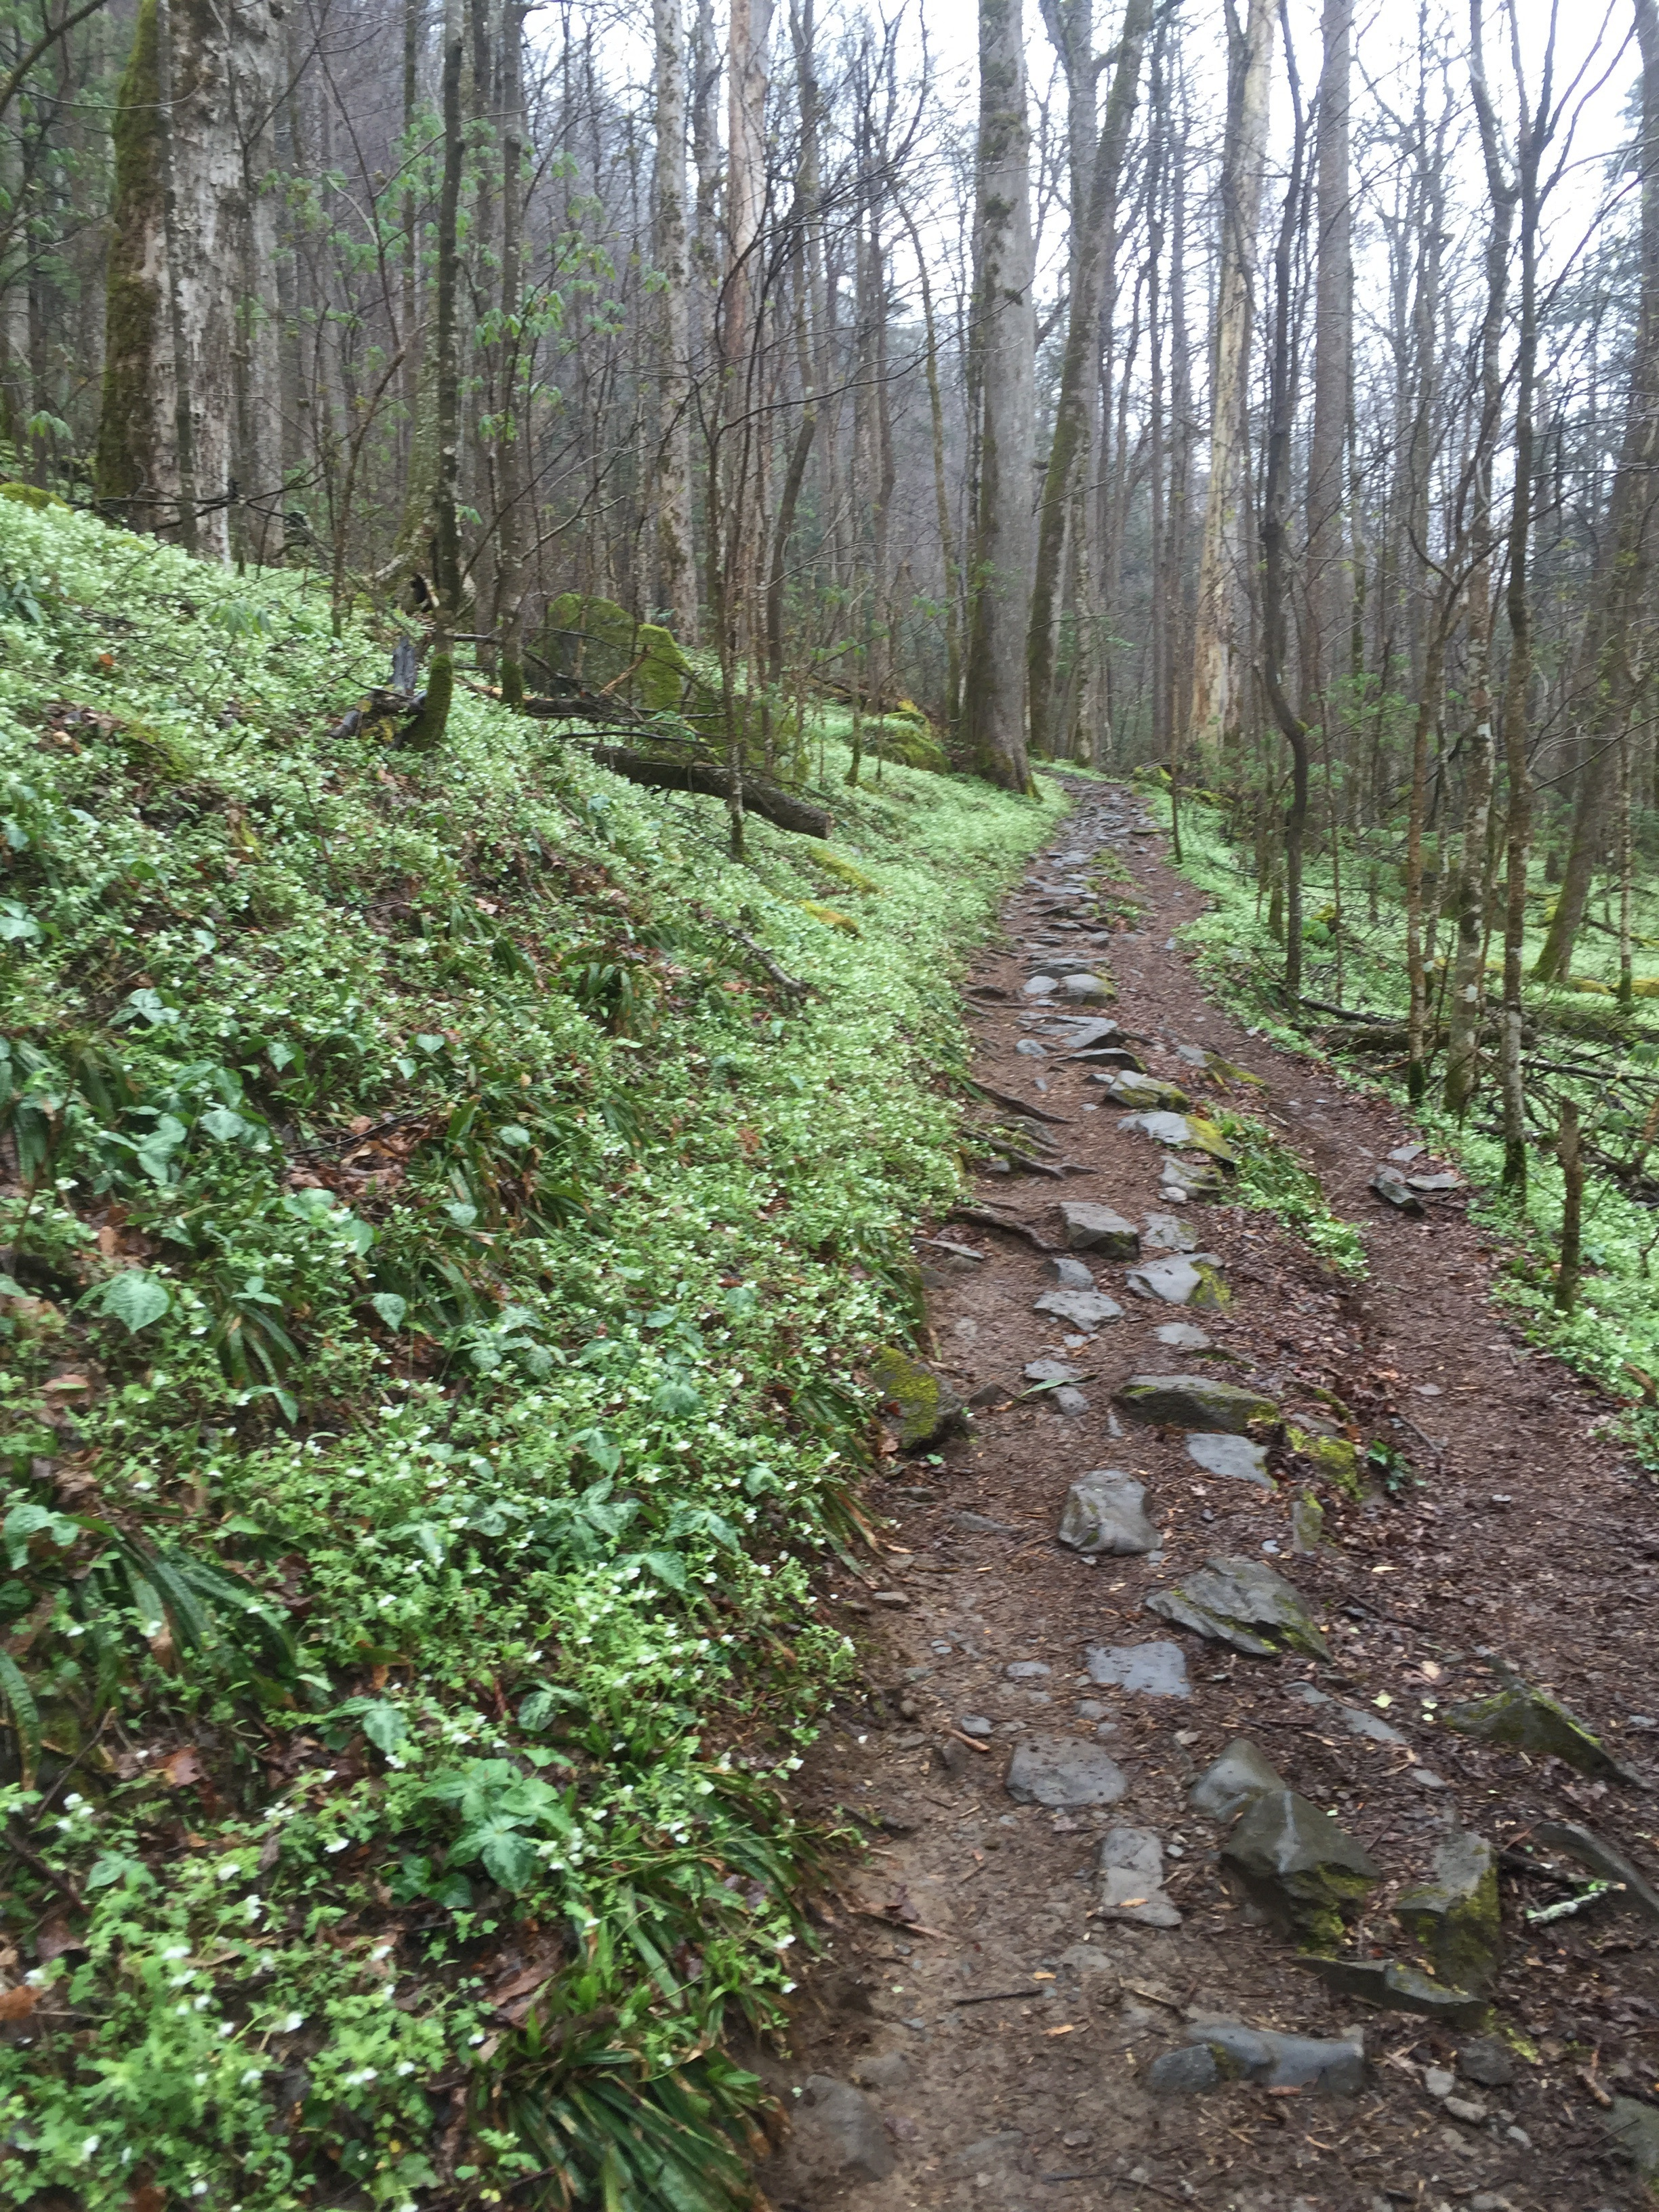 Hiking up Porters Creek Trail in the misty rain.